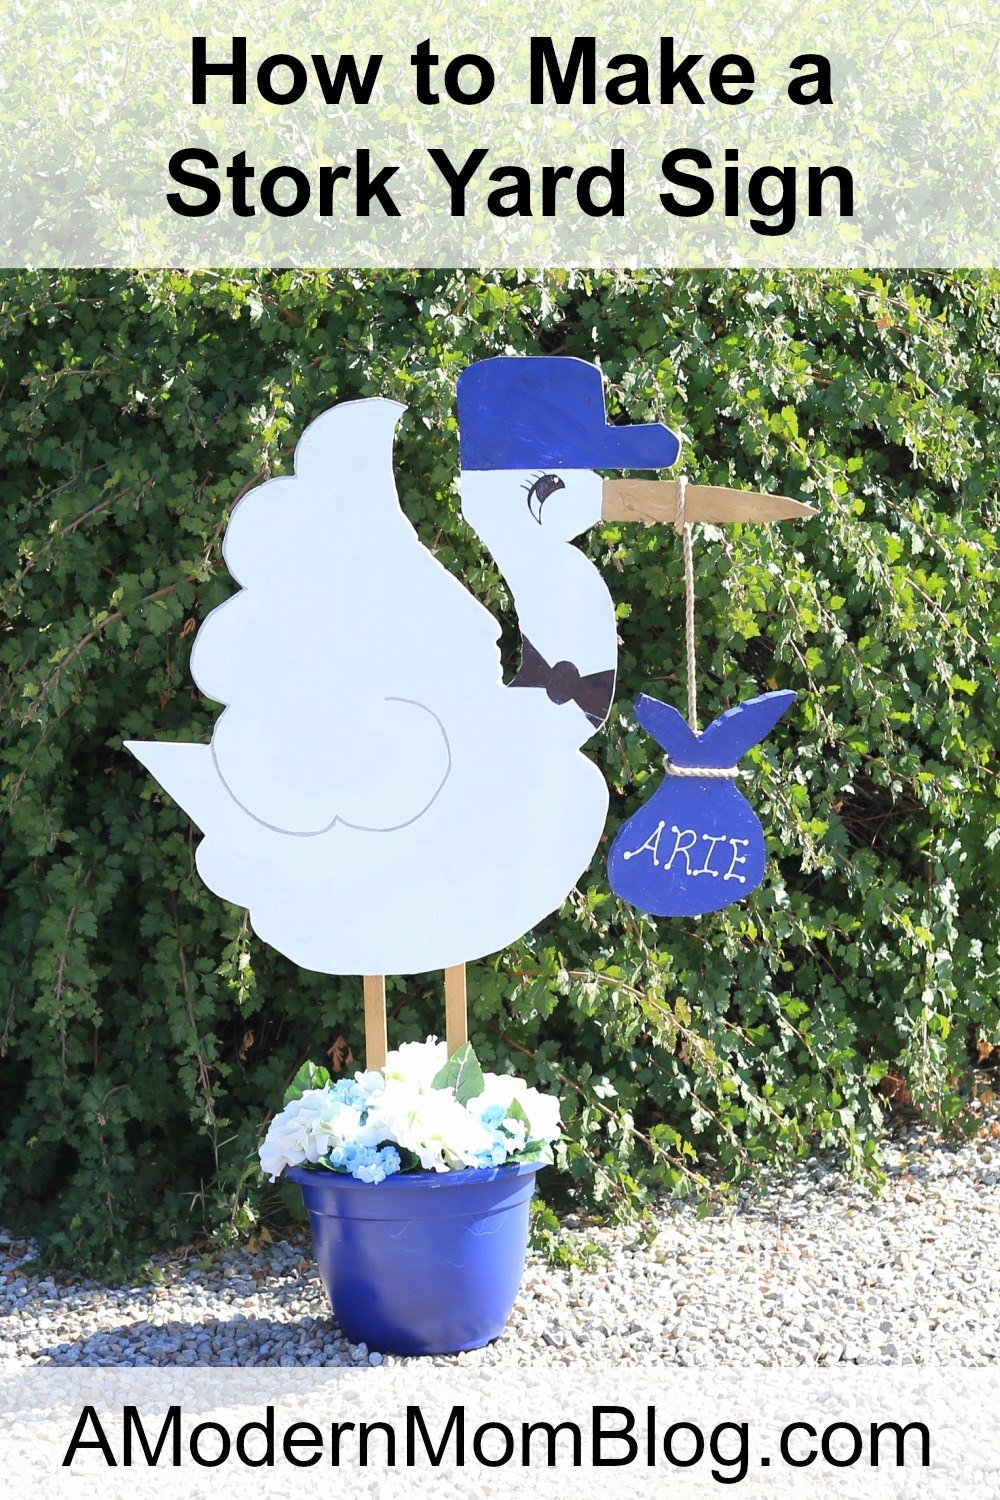 Baby Shower Gift Log Awesome Sam the Stork – A Modern Mom Blog